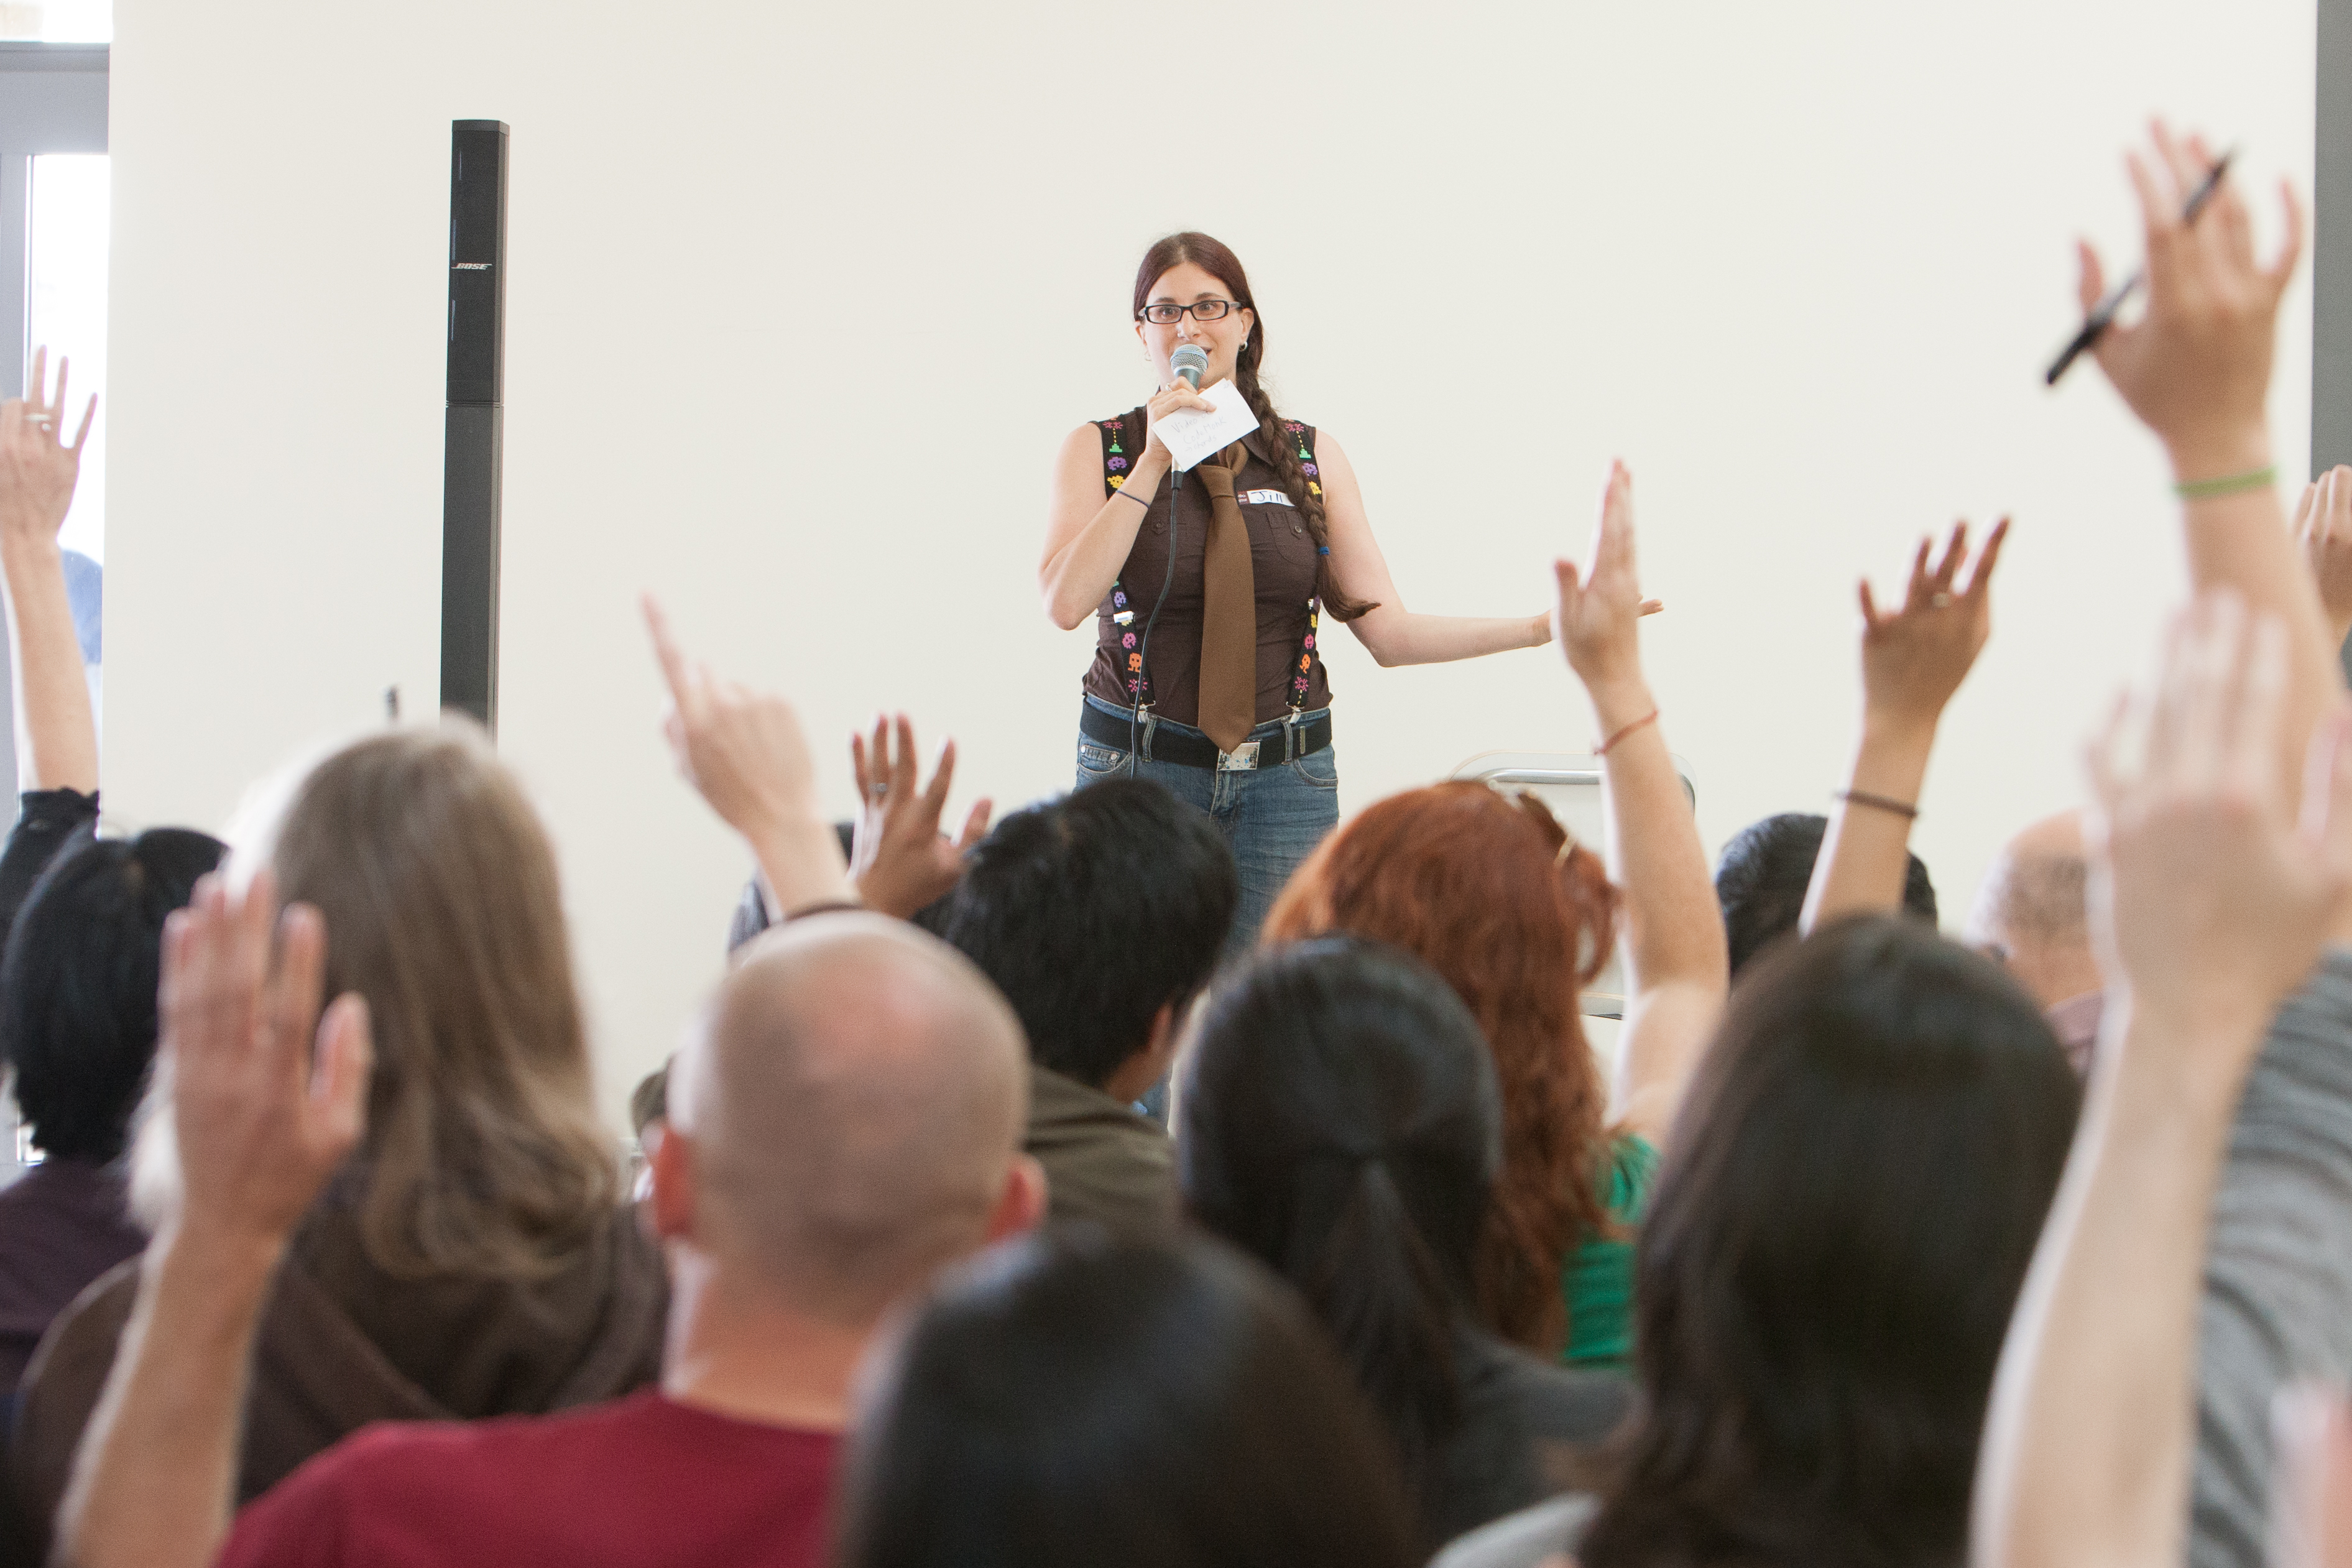 A woman holding a microphone, in front of a lot of people with raised hands.